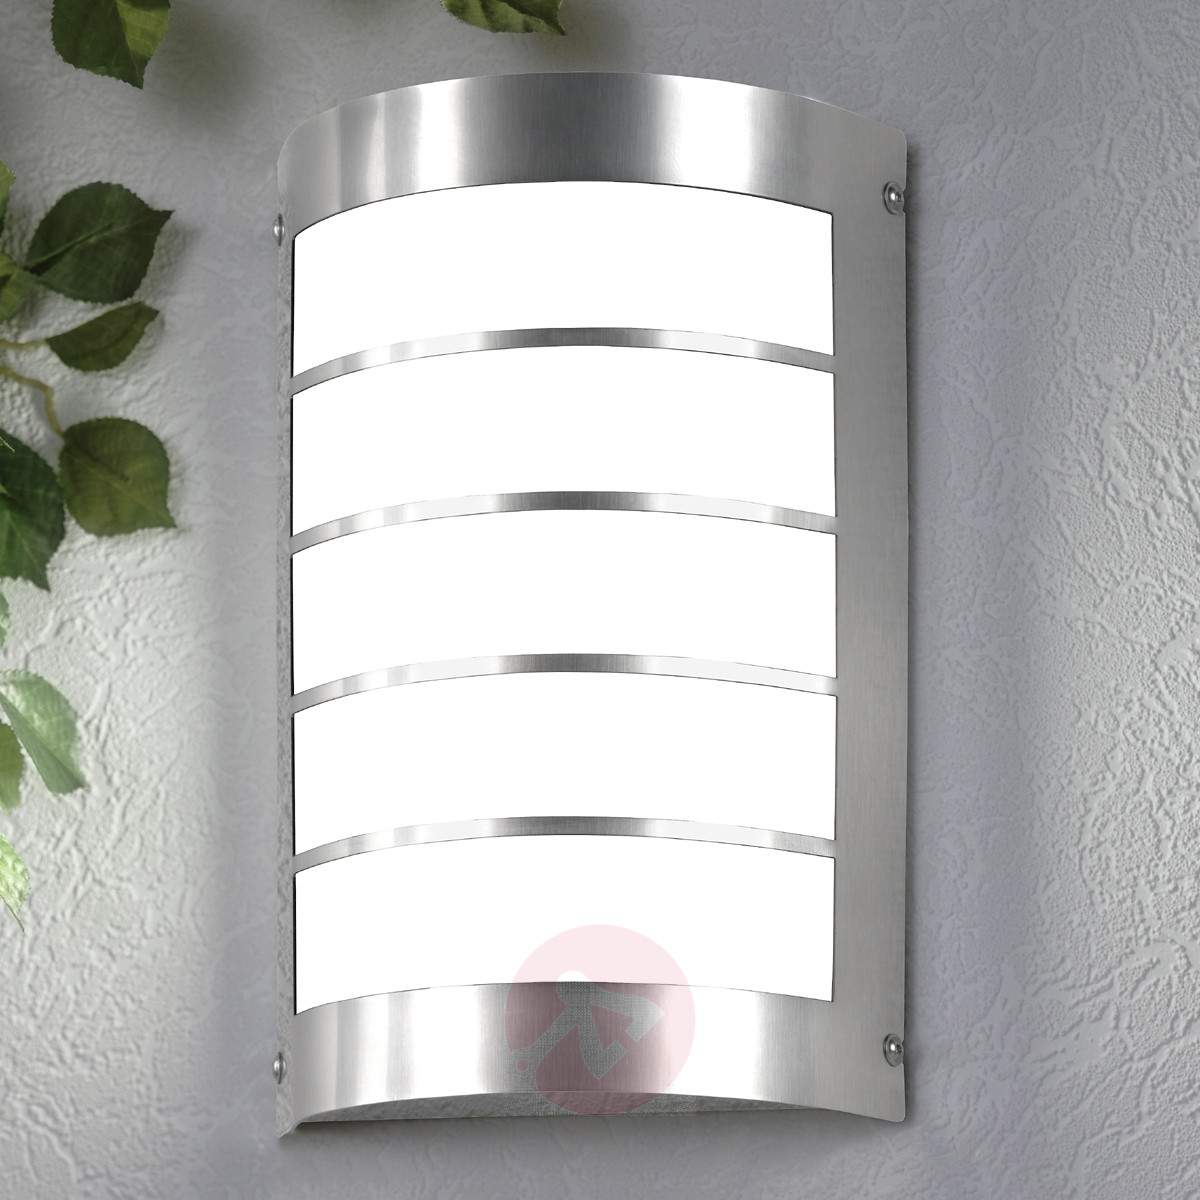 ... Homes Have Modern Exterior Wall Lights. These Lights Ameliorate The  Aesthetics Of Homes By Spot Lighting The Landscape Characteristics Of A  Compound, ...